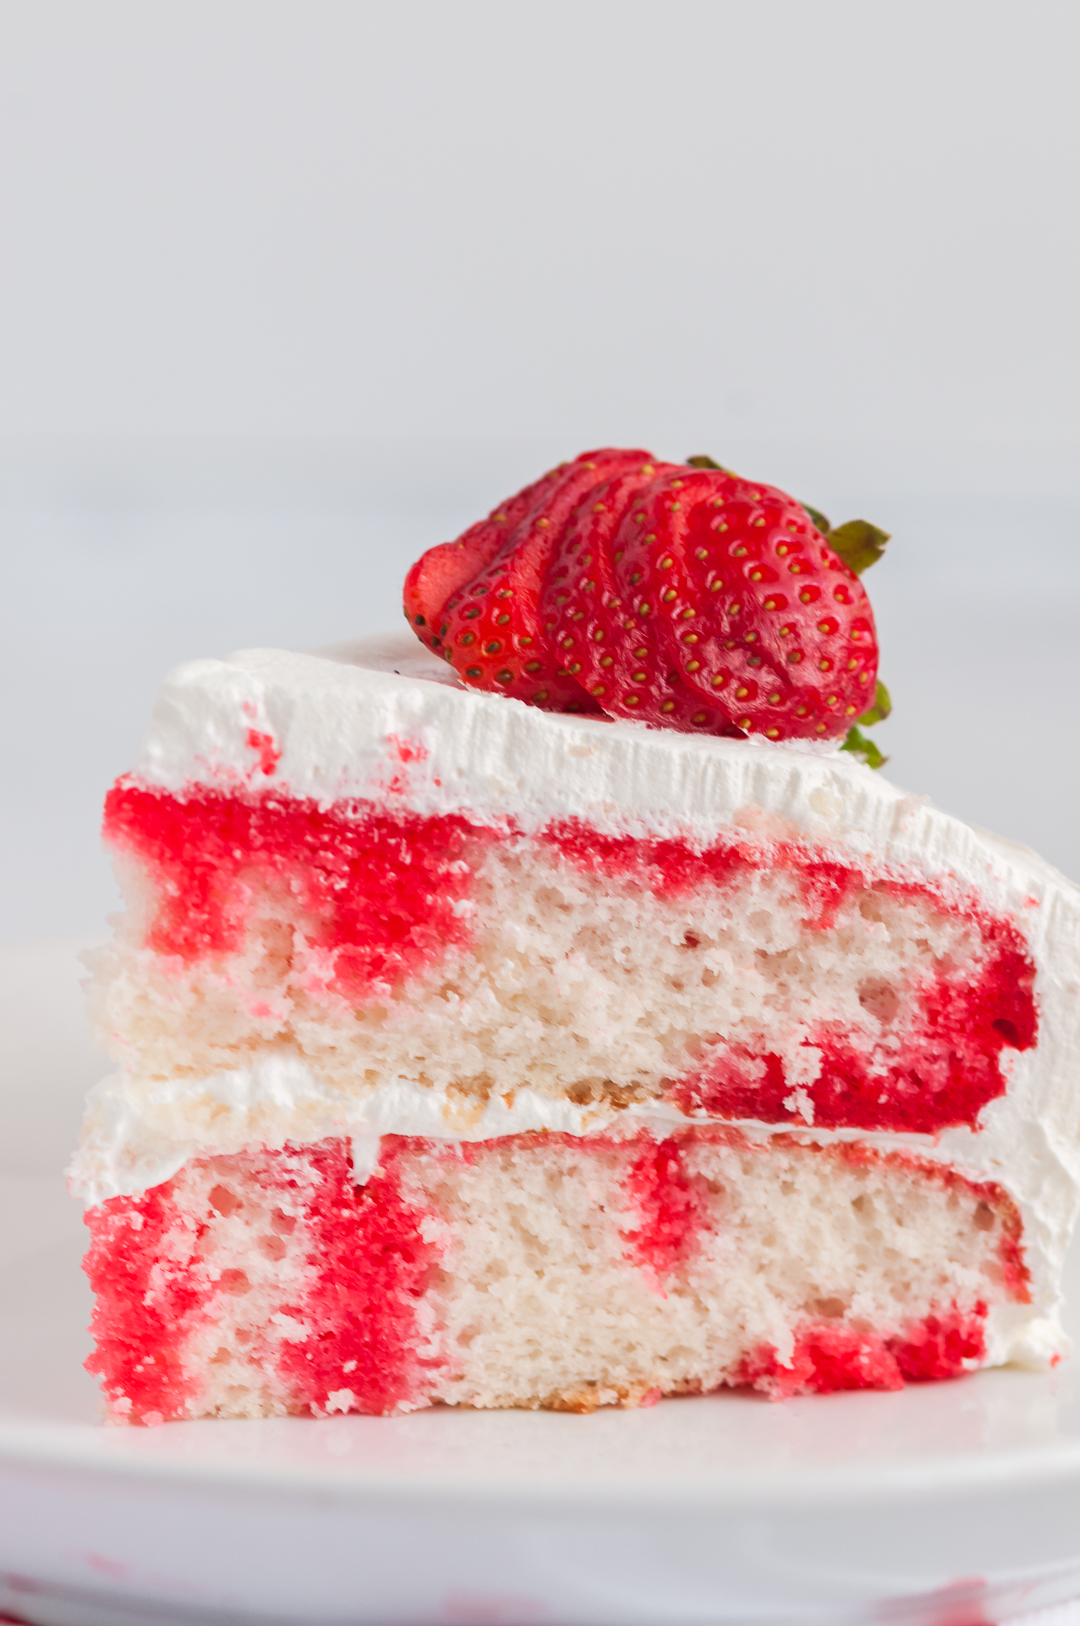 slice of strawberry poke cake on a plate